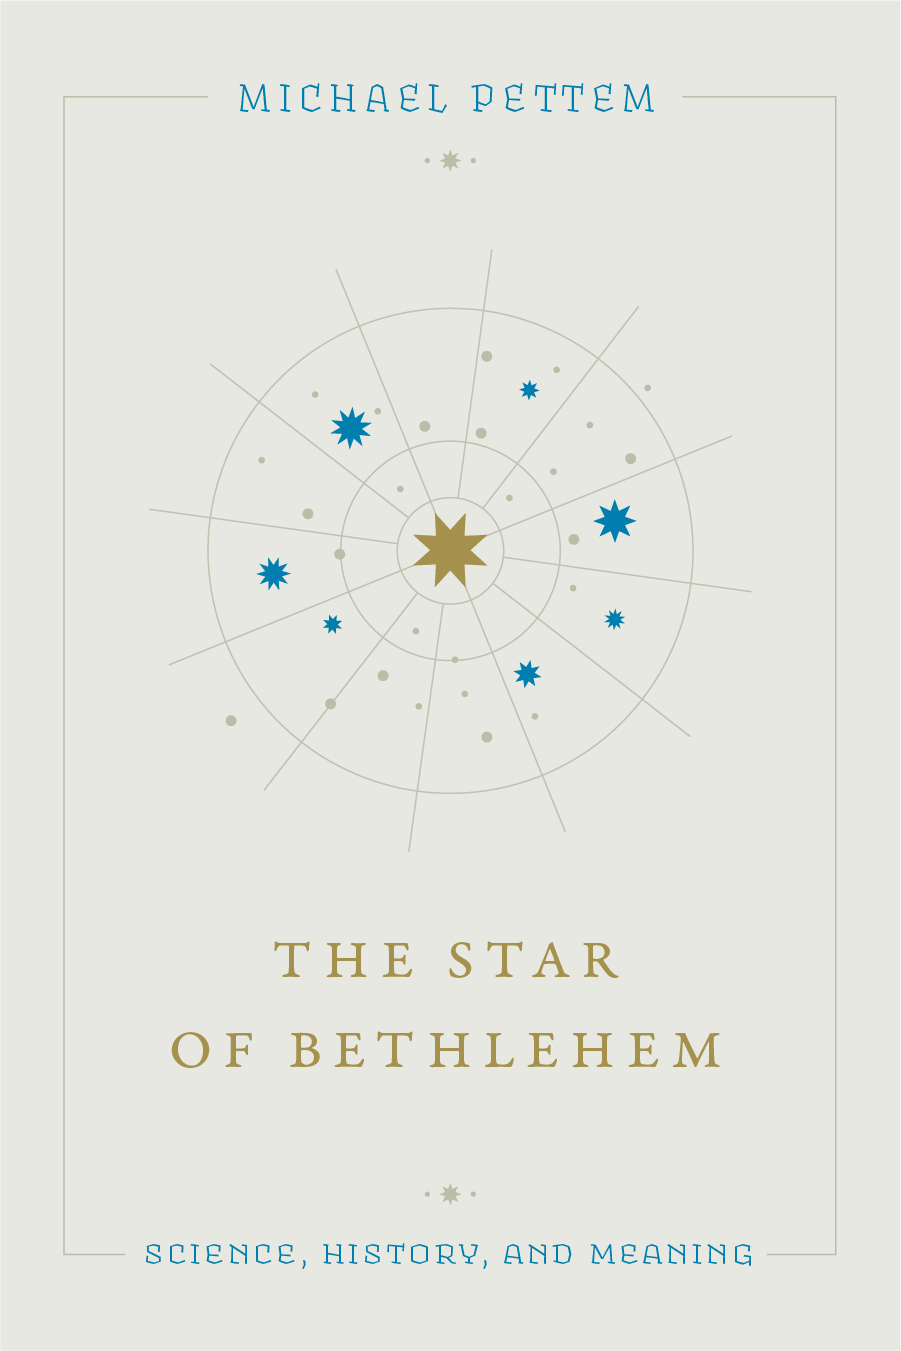 The Star of Bethlehem: Science, History, and Meaning